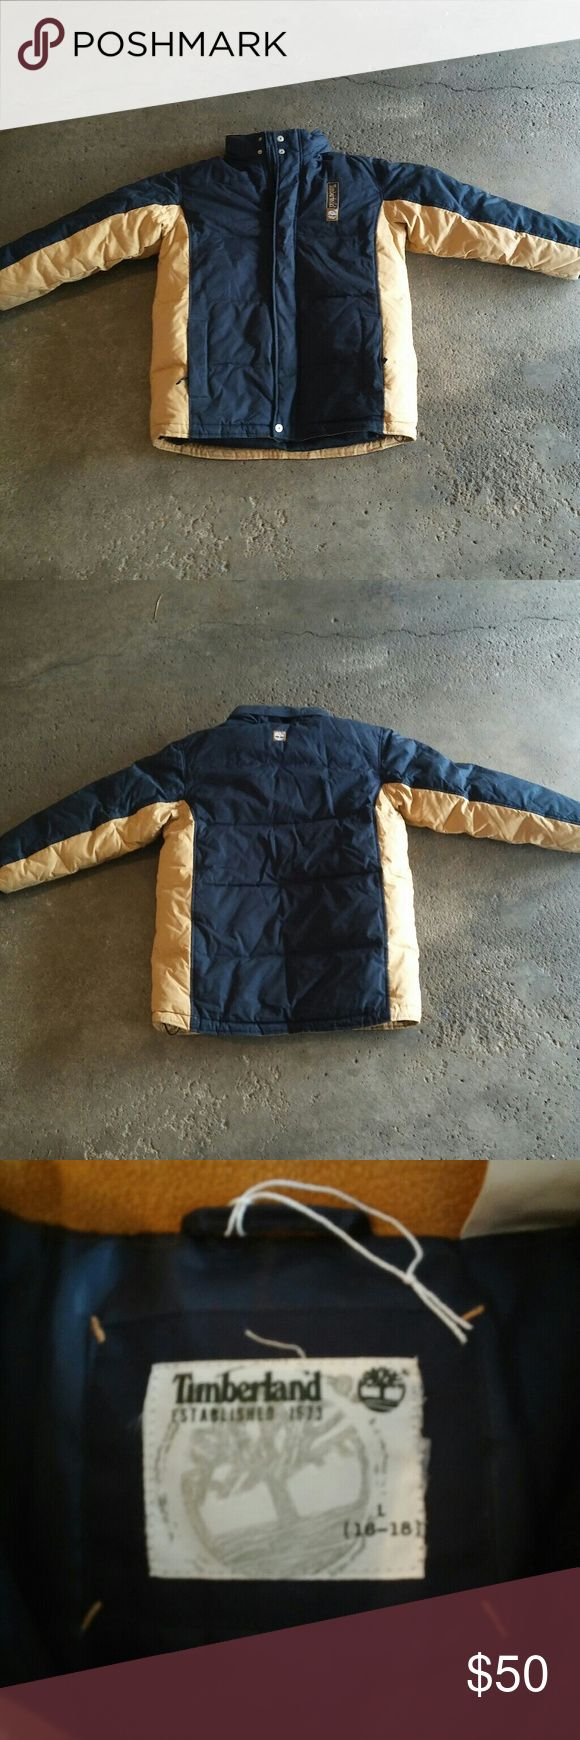 Heavy Large Timberland Coat In great condition Large Kid's heavy coat. Will ship within 24-48Hrs Let me know if you have any questions Thanks for looking:-D Timberland Jackets & Coats